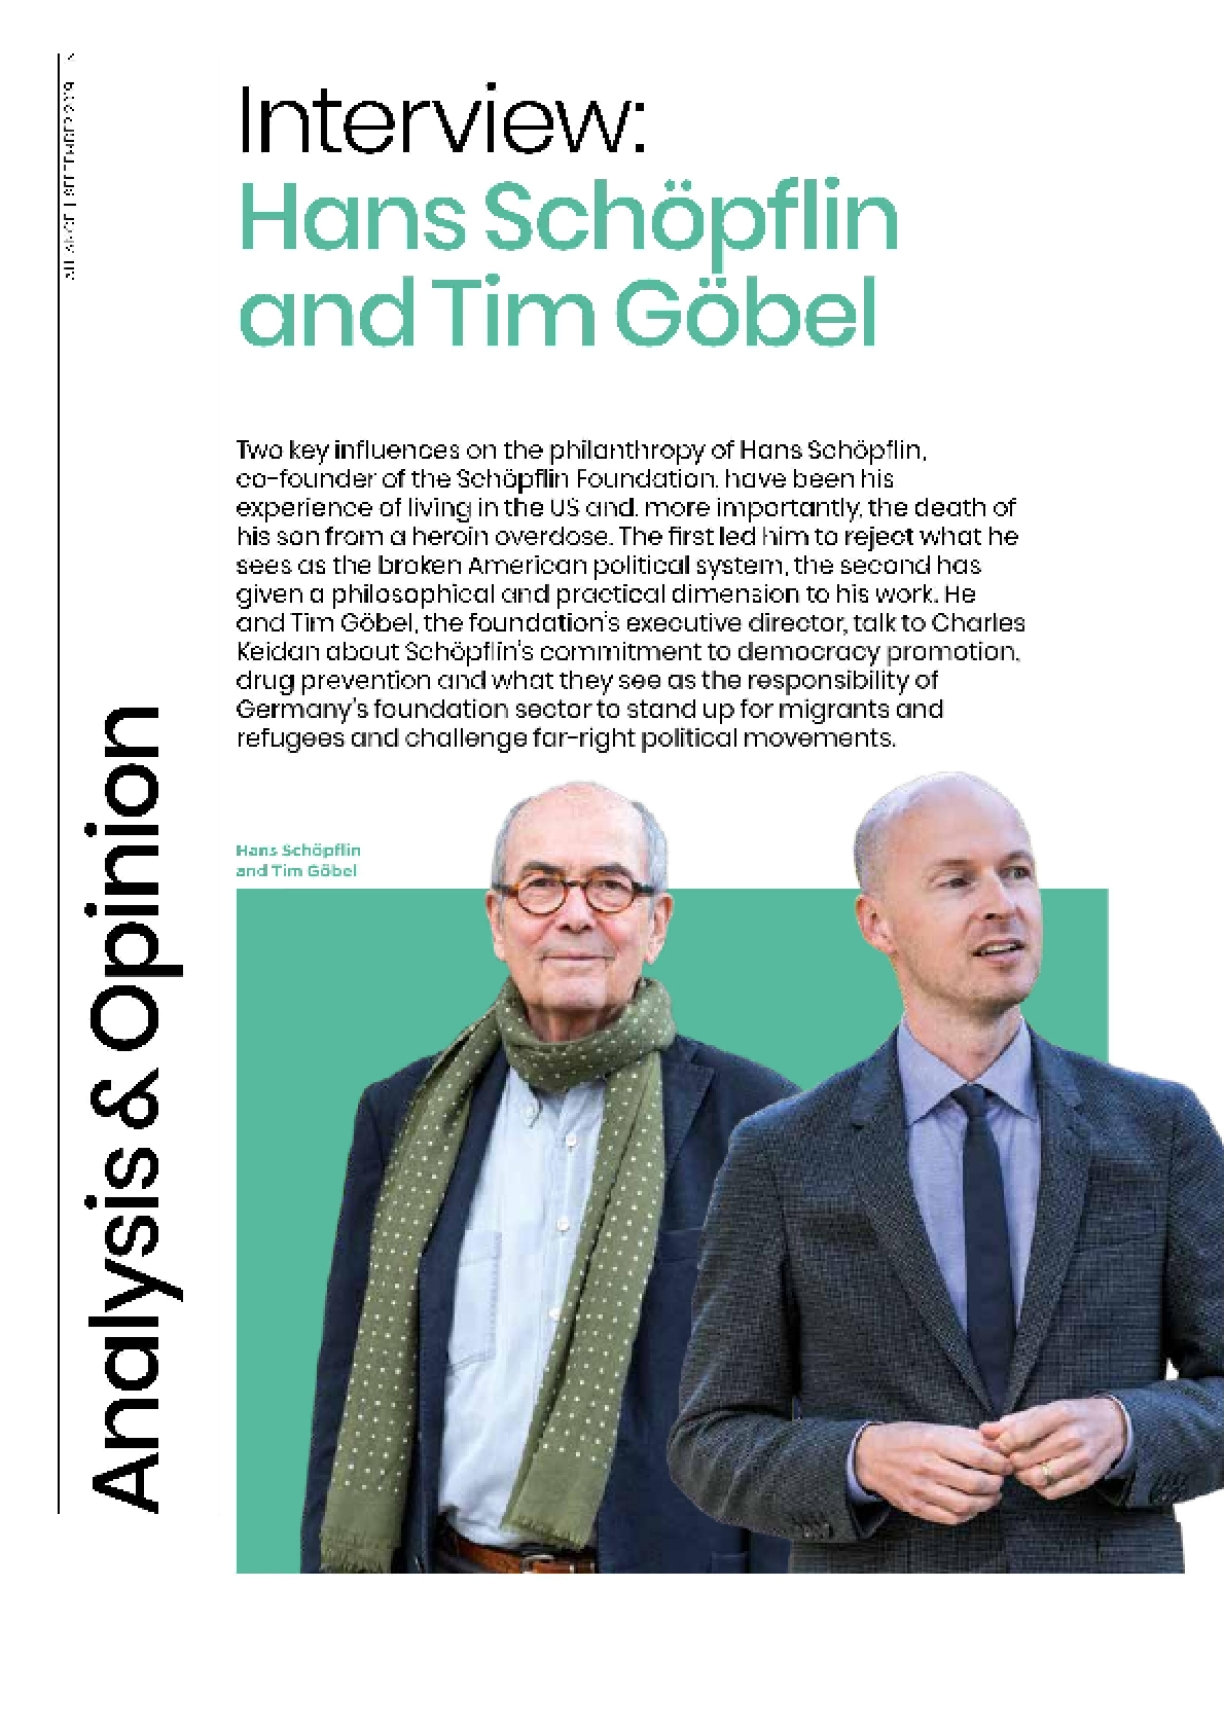 Interview: Hans Schöpflin and Tim Göbel